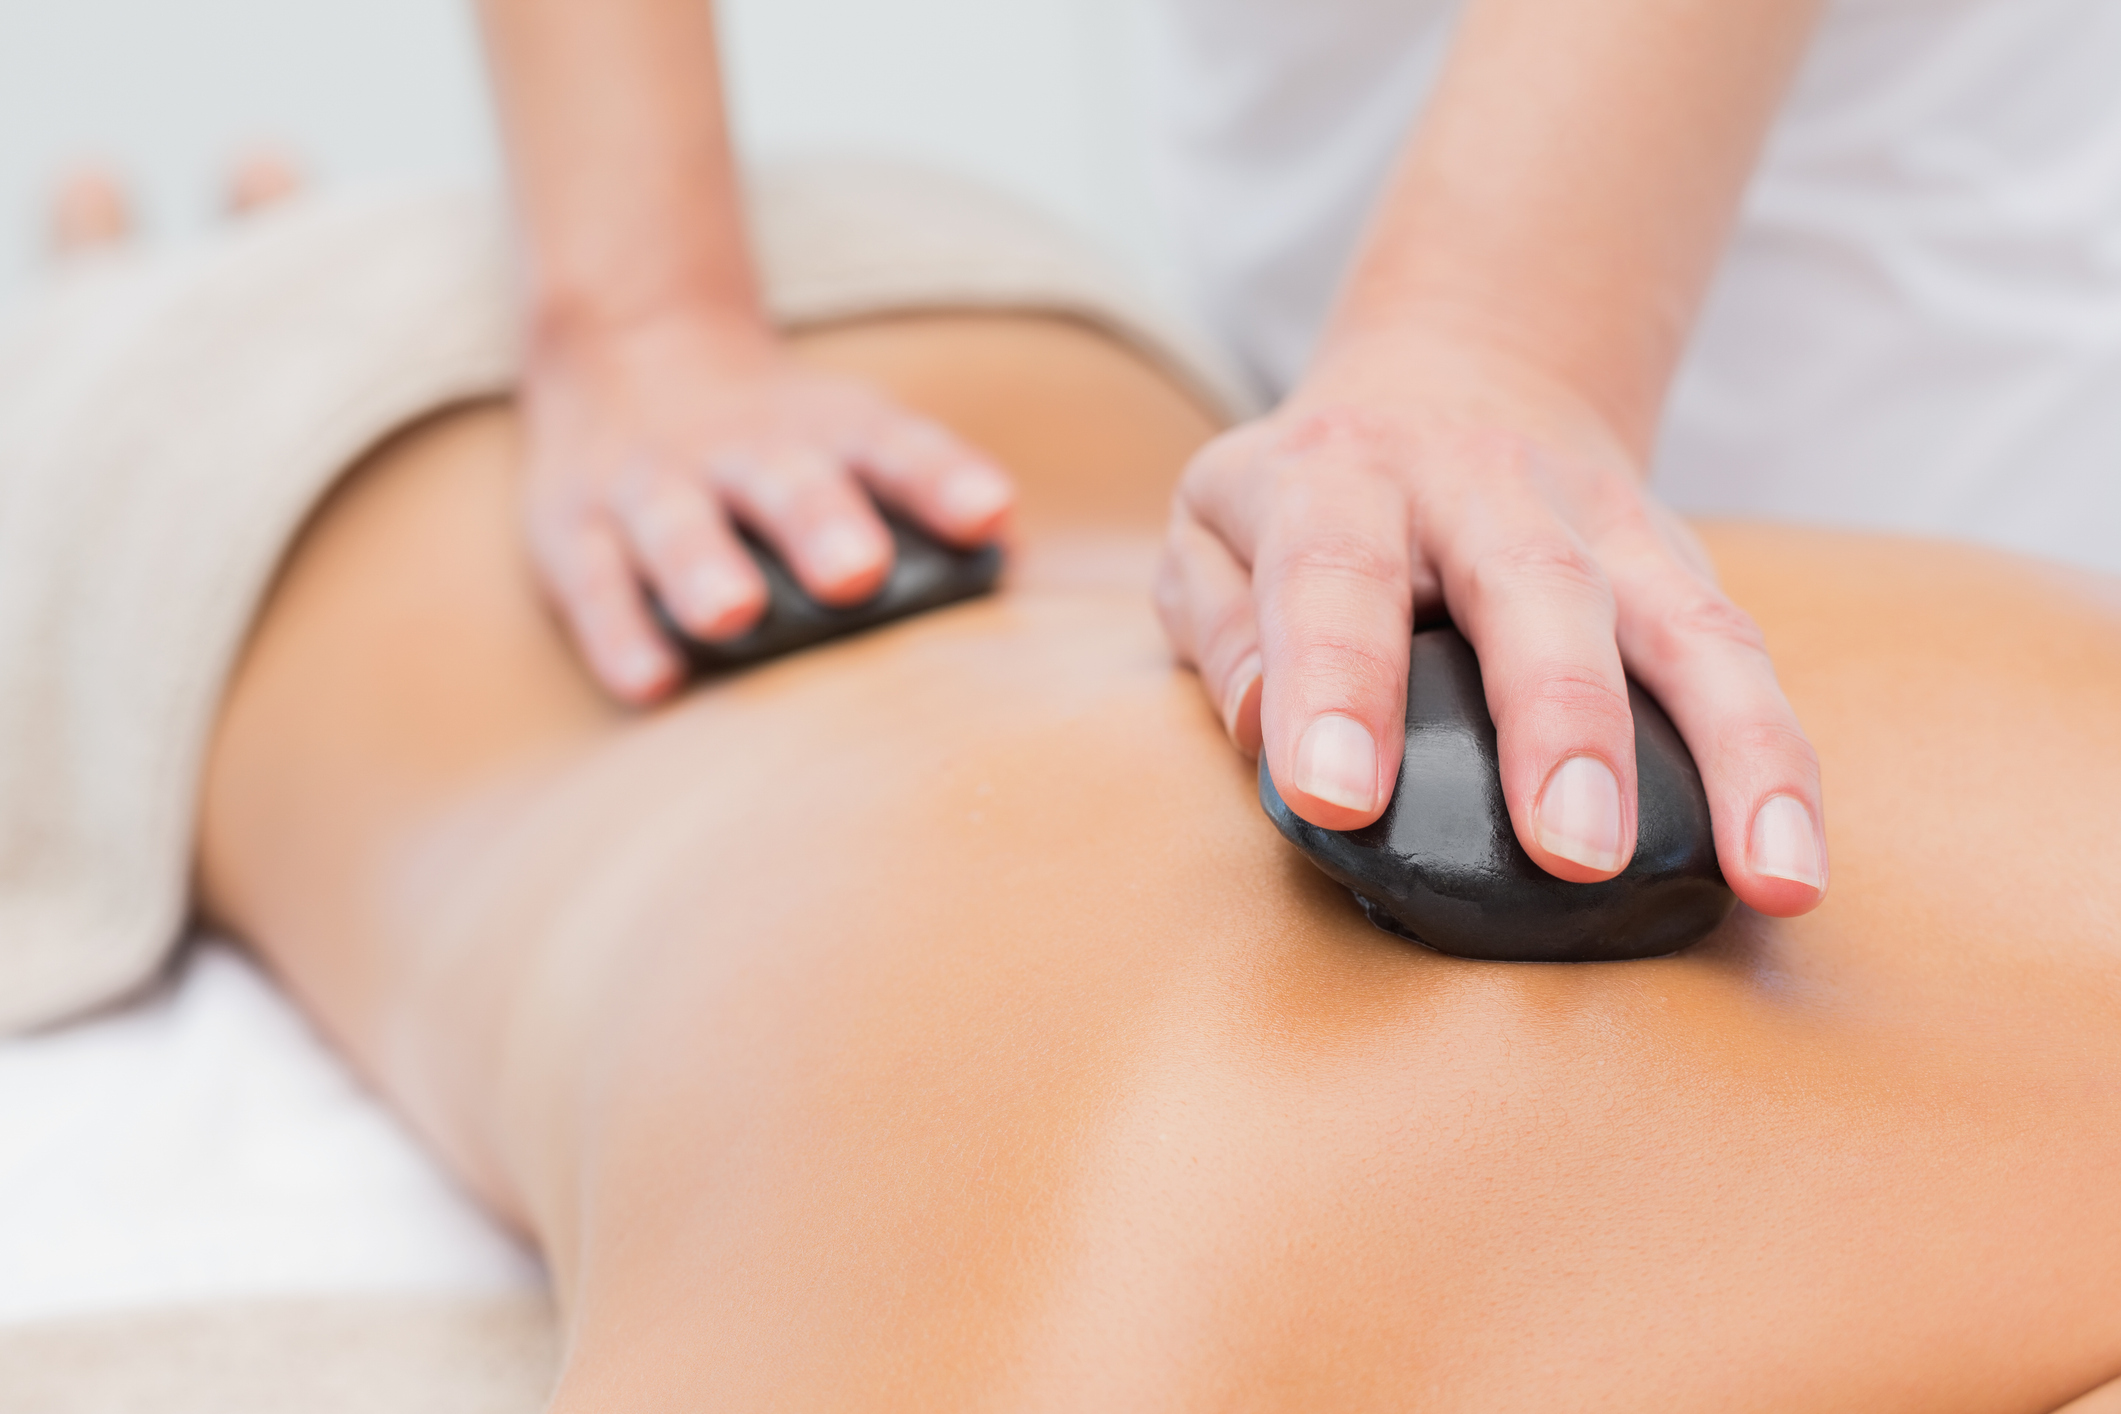 Hot Stone Massage - Perfectly smooth basalt stones are warmed in water bath . Combination of pressure and heat allows to release tension and increase circulation in deep layer of muscles